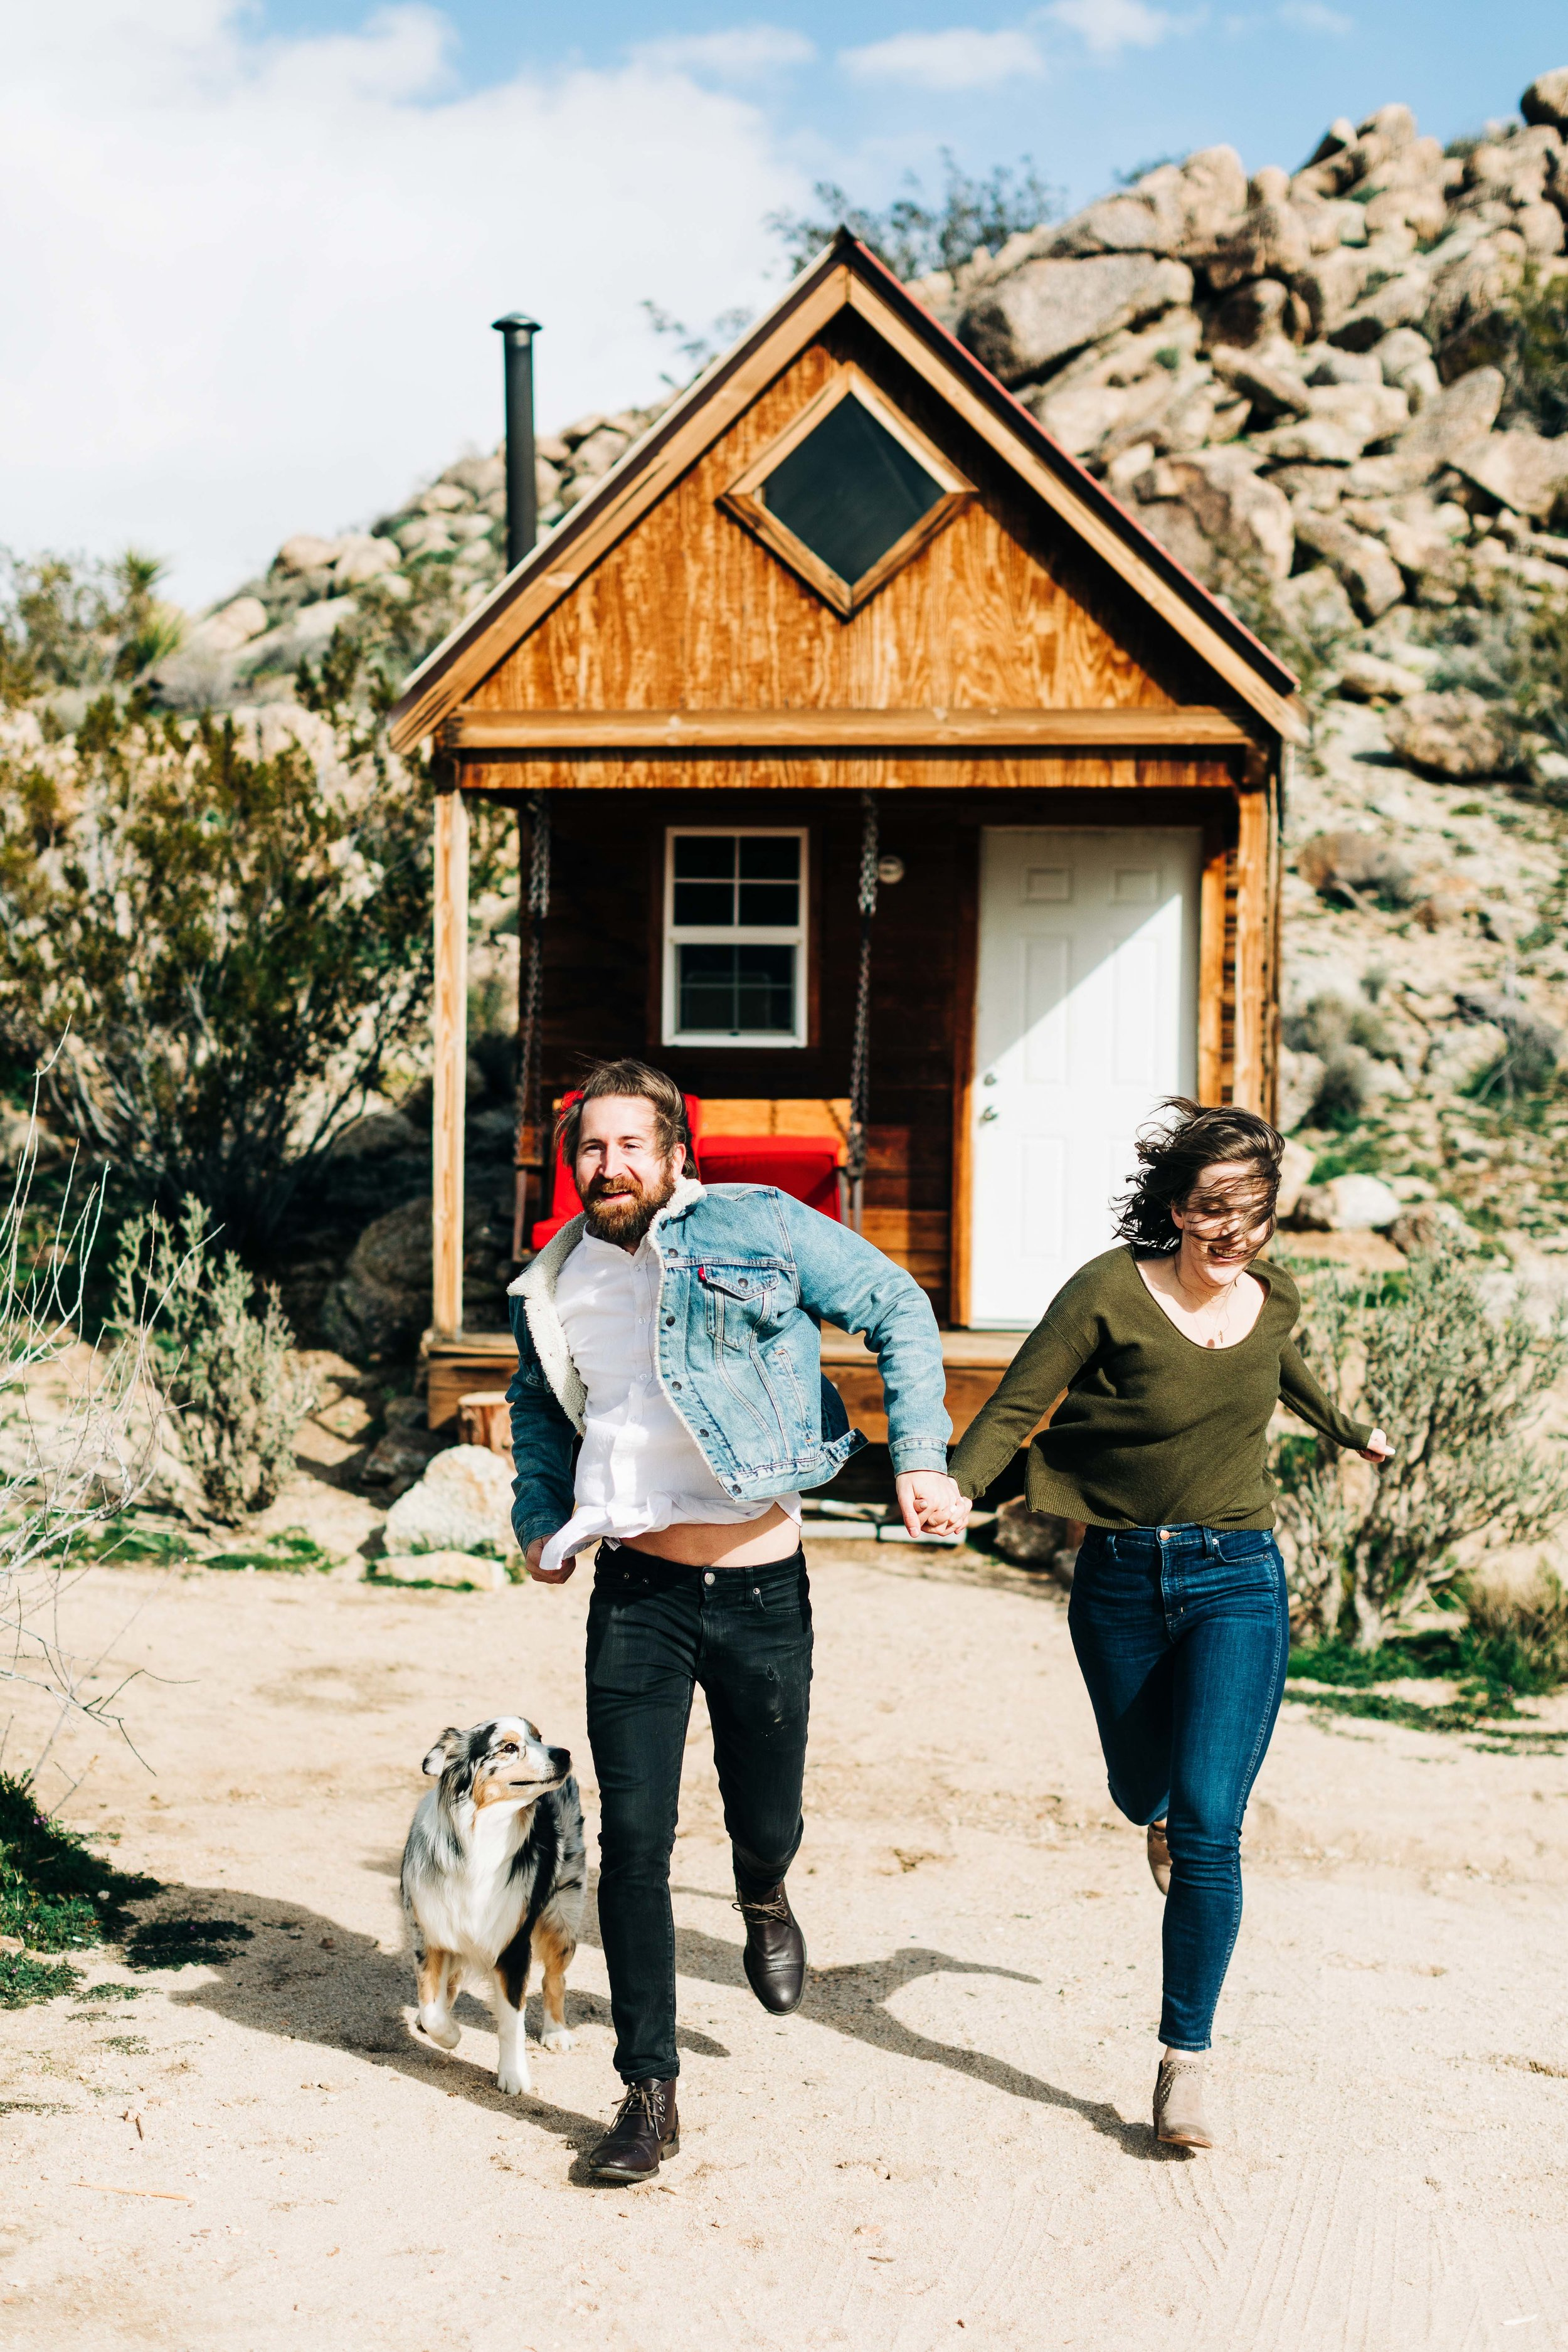 Hayley&Boomer_Joshua-Tree-Engagement-Photos_Tiny-Home_Southern-California-Wedding-Photographer_33